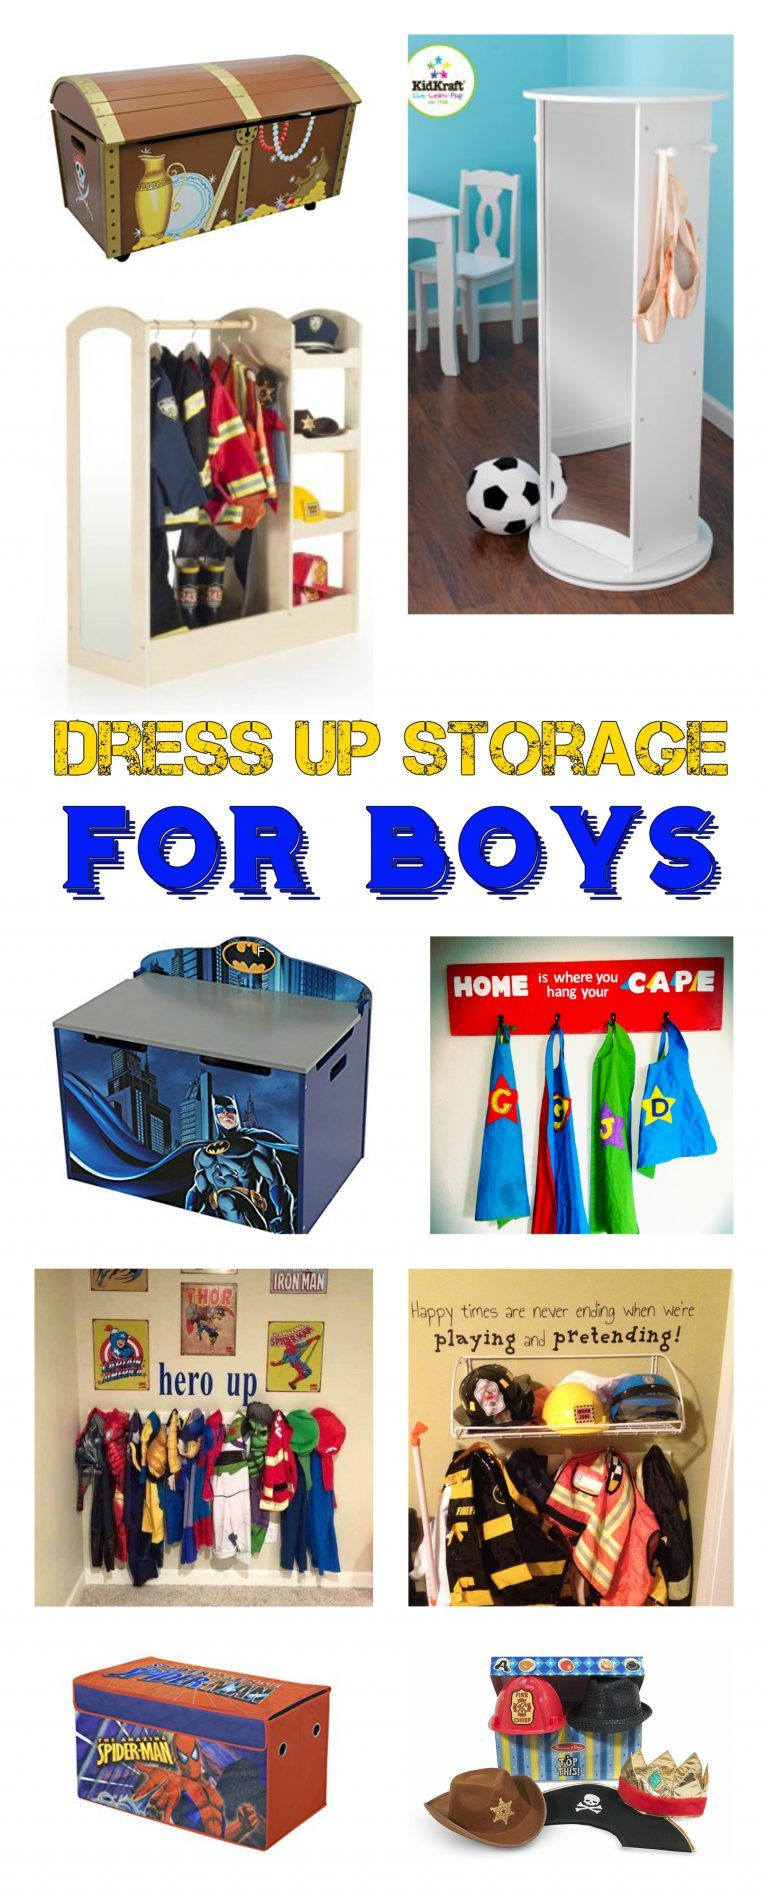 Dress up storage for boys need something great for your